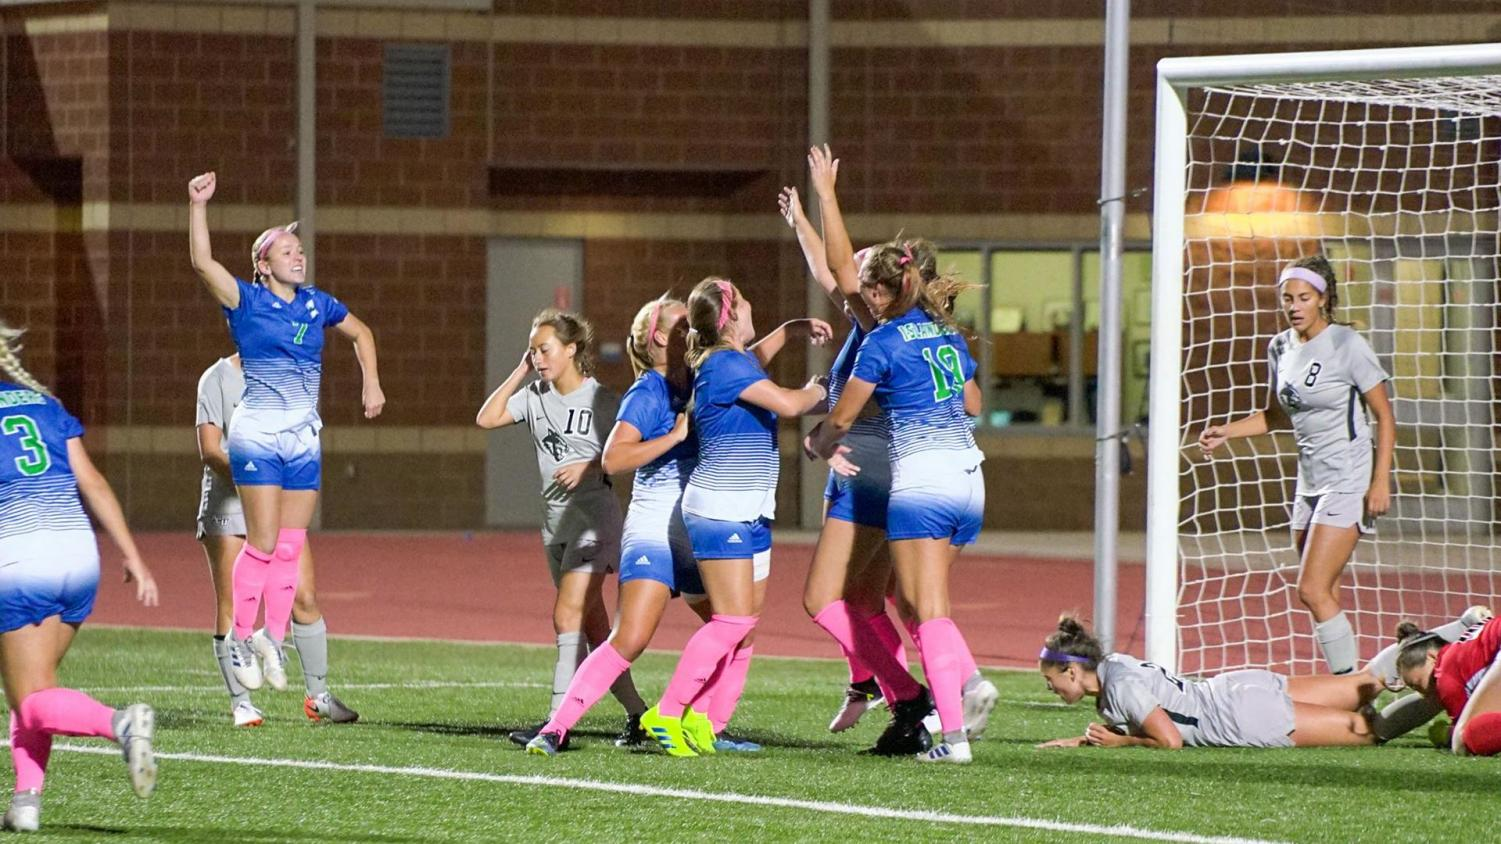 Photo courtesy of Islander Athletics - TAMU-CC women's soccer team celebrates after goal from junior Kayla Gove, sealing the upset for the lady Islanders in a 2-1 victory.